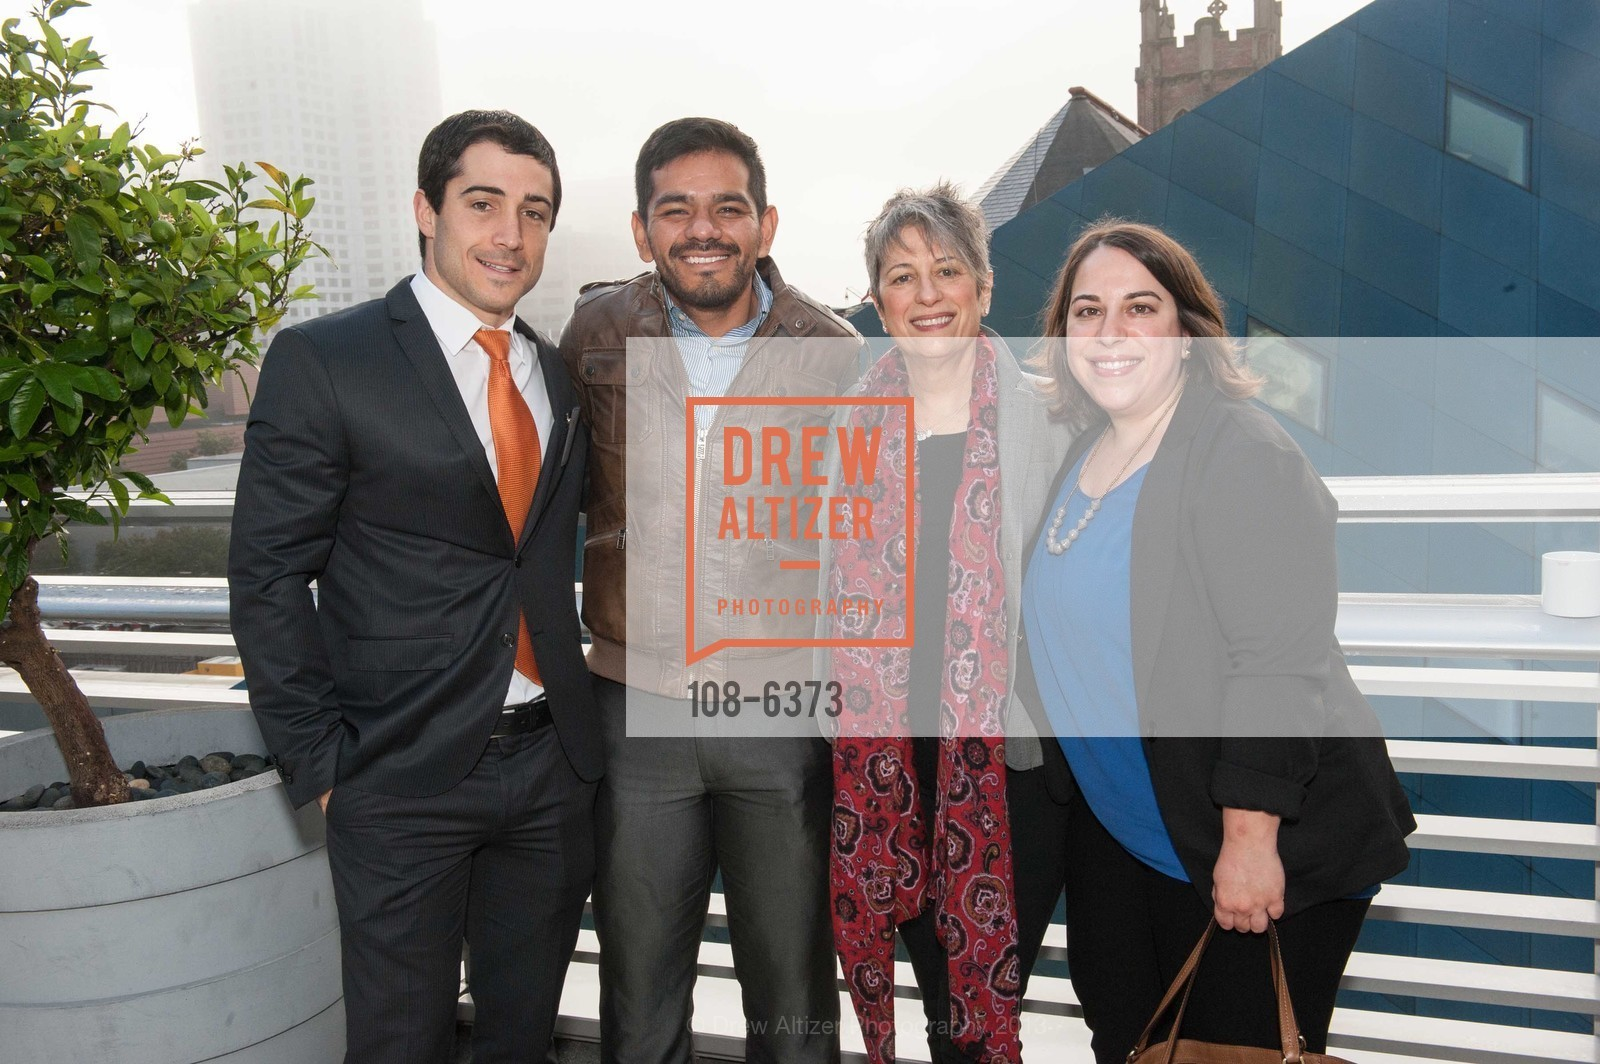 Connor Johnston, Juan Cerda, Nancy Oliveira, Lauren Kahn, HEALTH RIGHT 360:  Be the Change 2013, US, November 8th, 2013,Drew Altizer, Drew Altizer Photography, full-service agency, private events, San Francisco photographer, photographer california